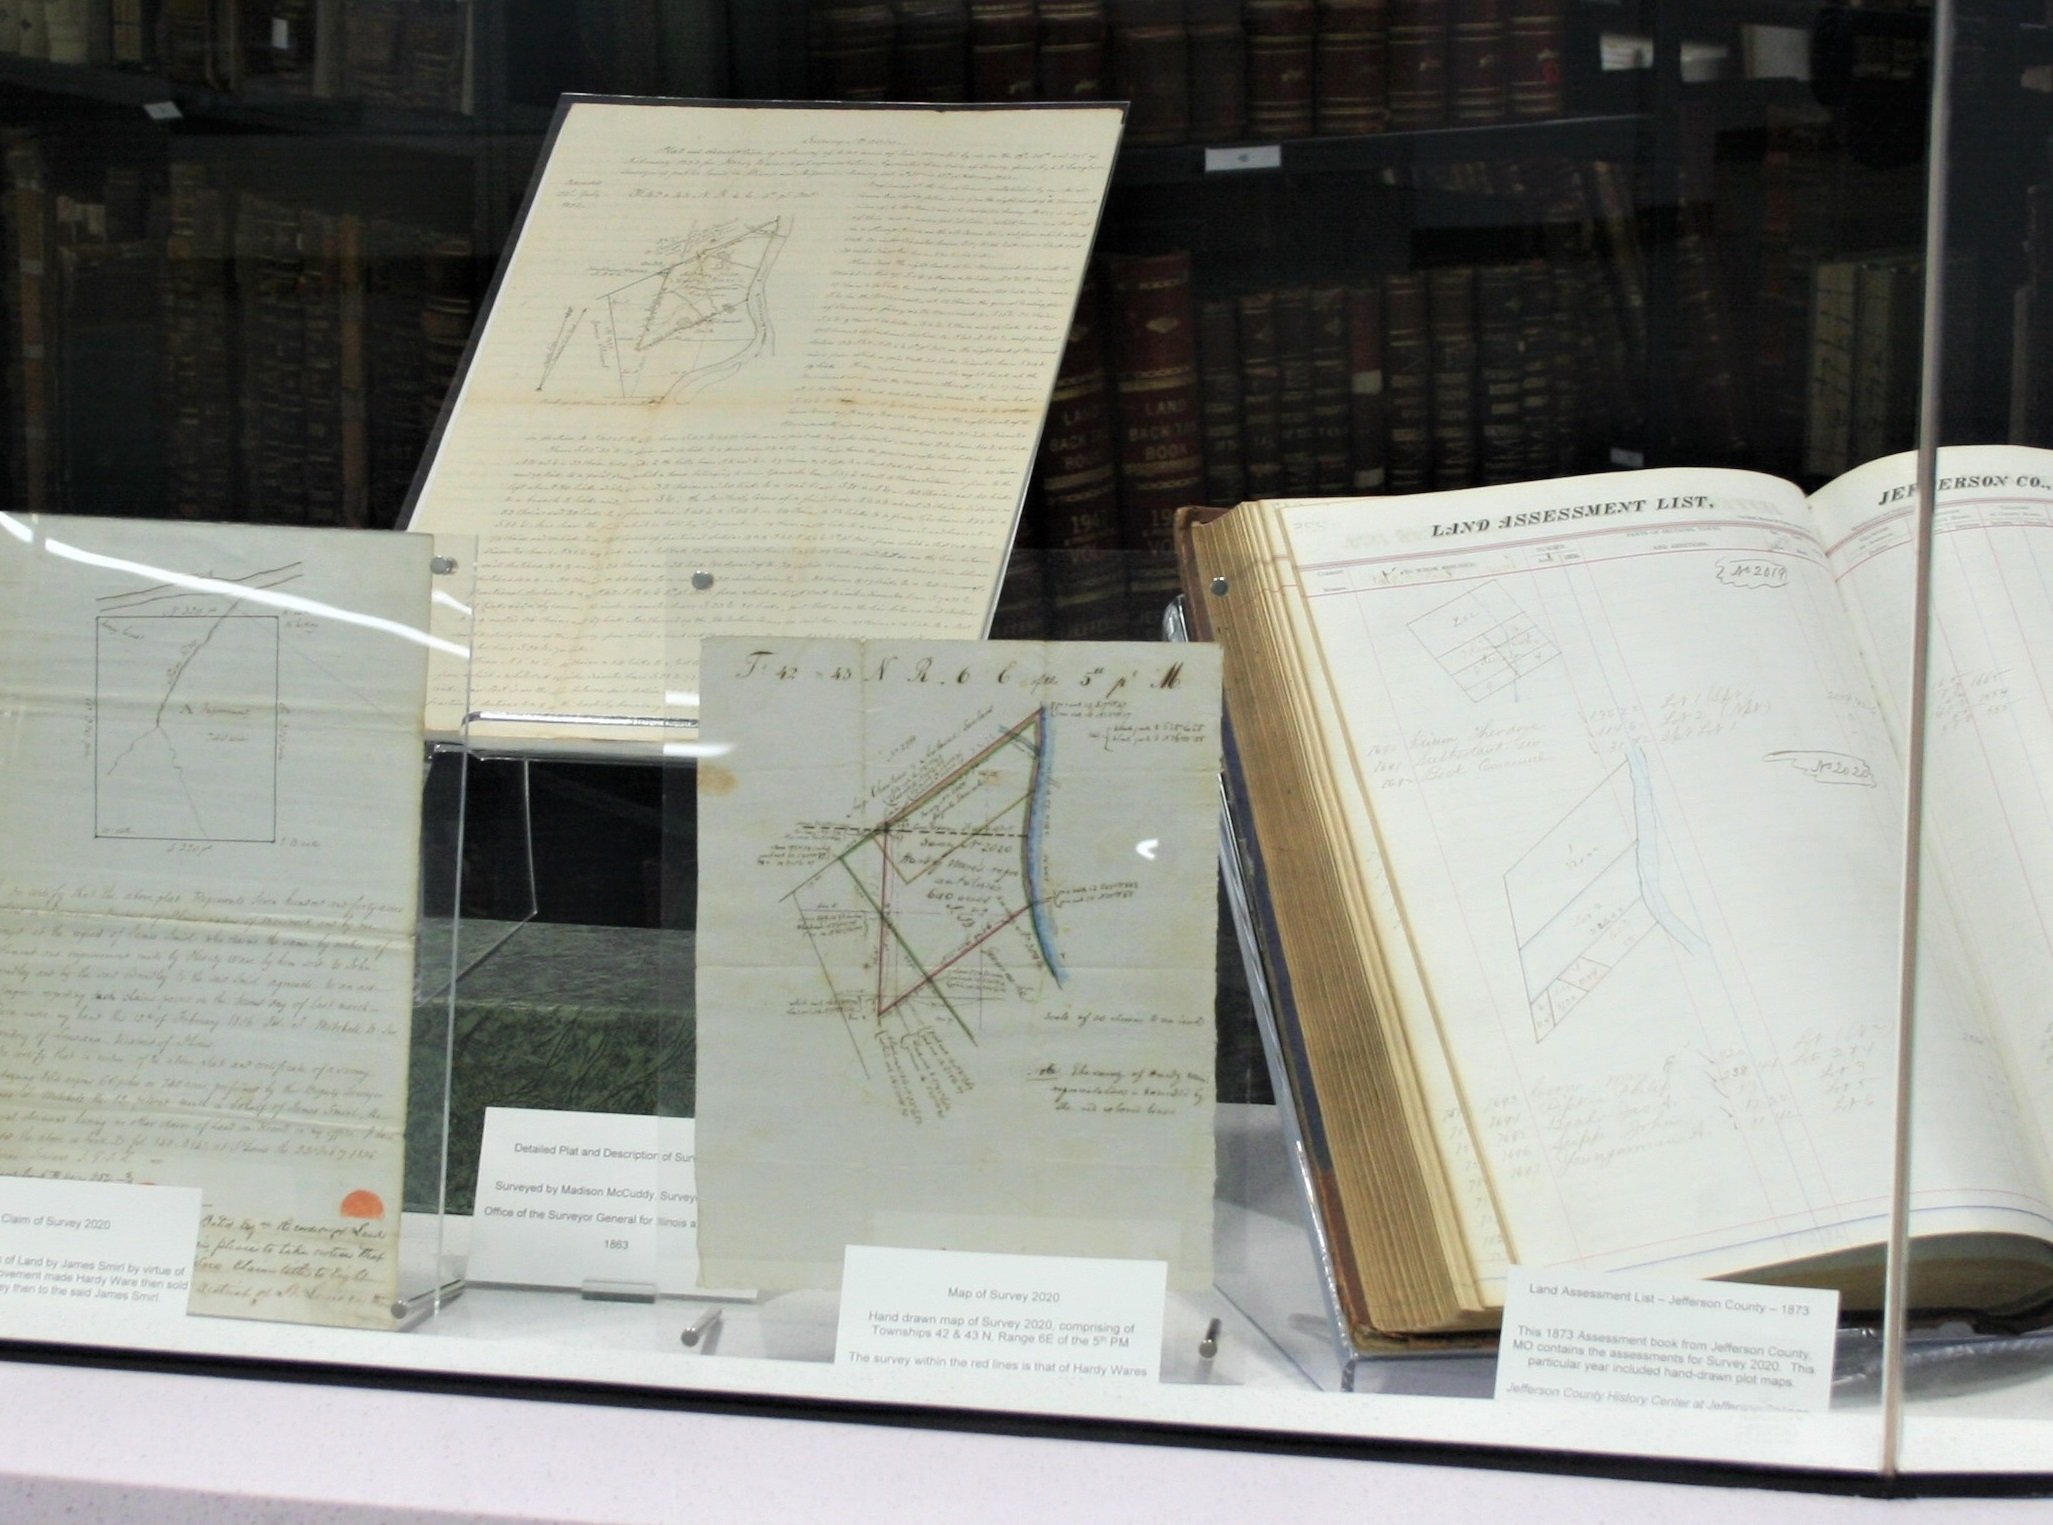 Image of exhibitsurvey 2020 map and texts